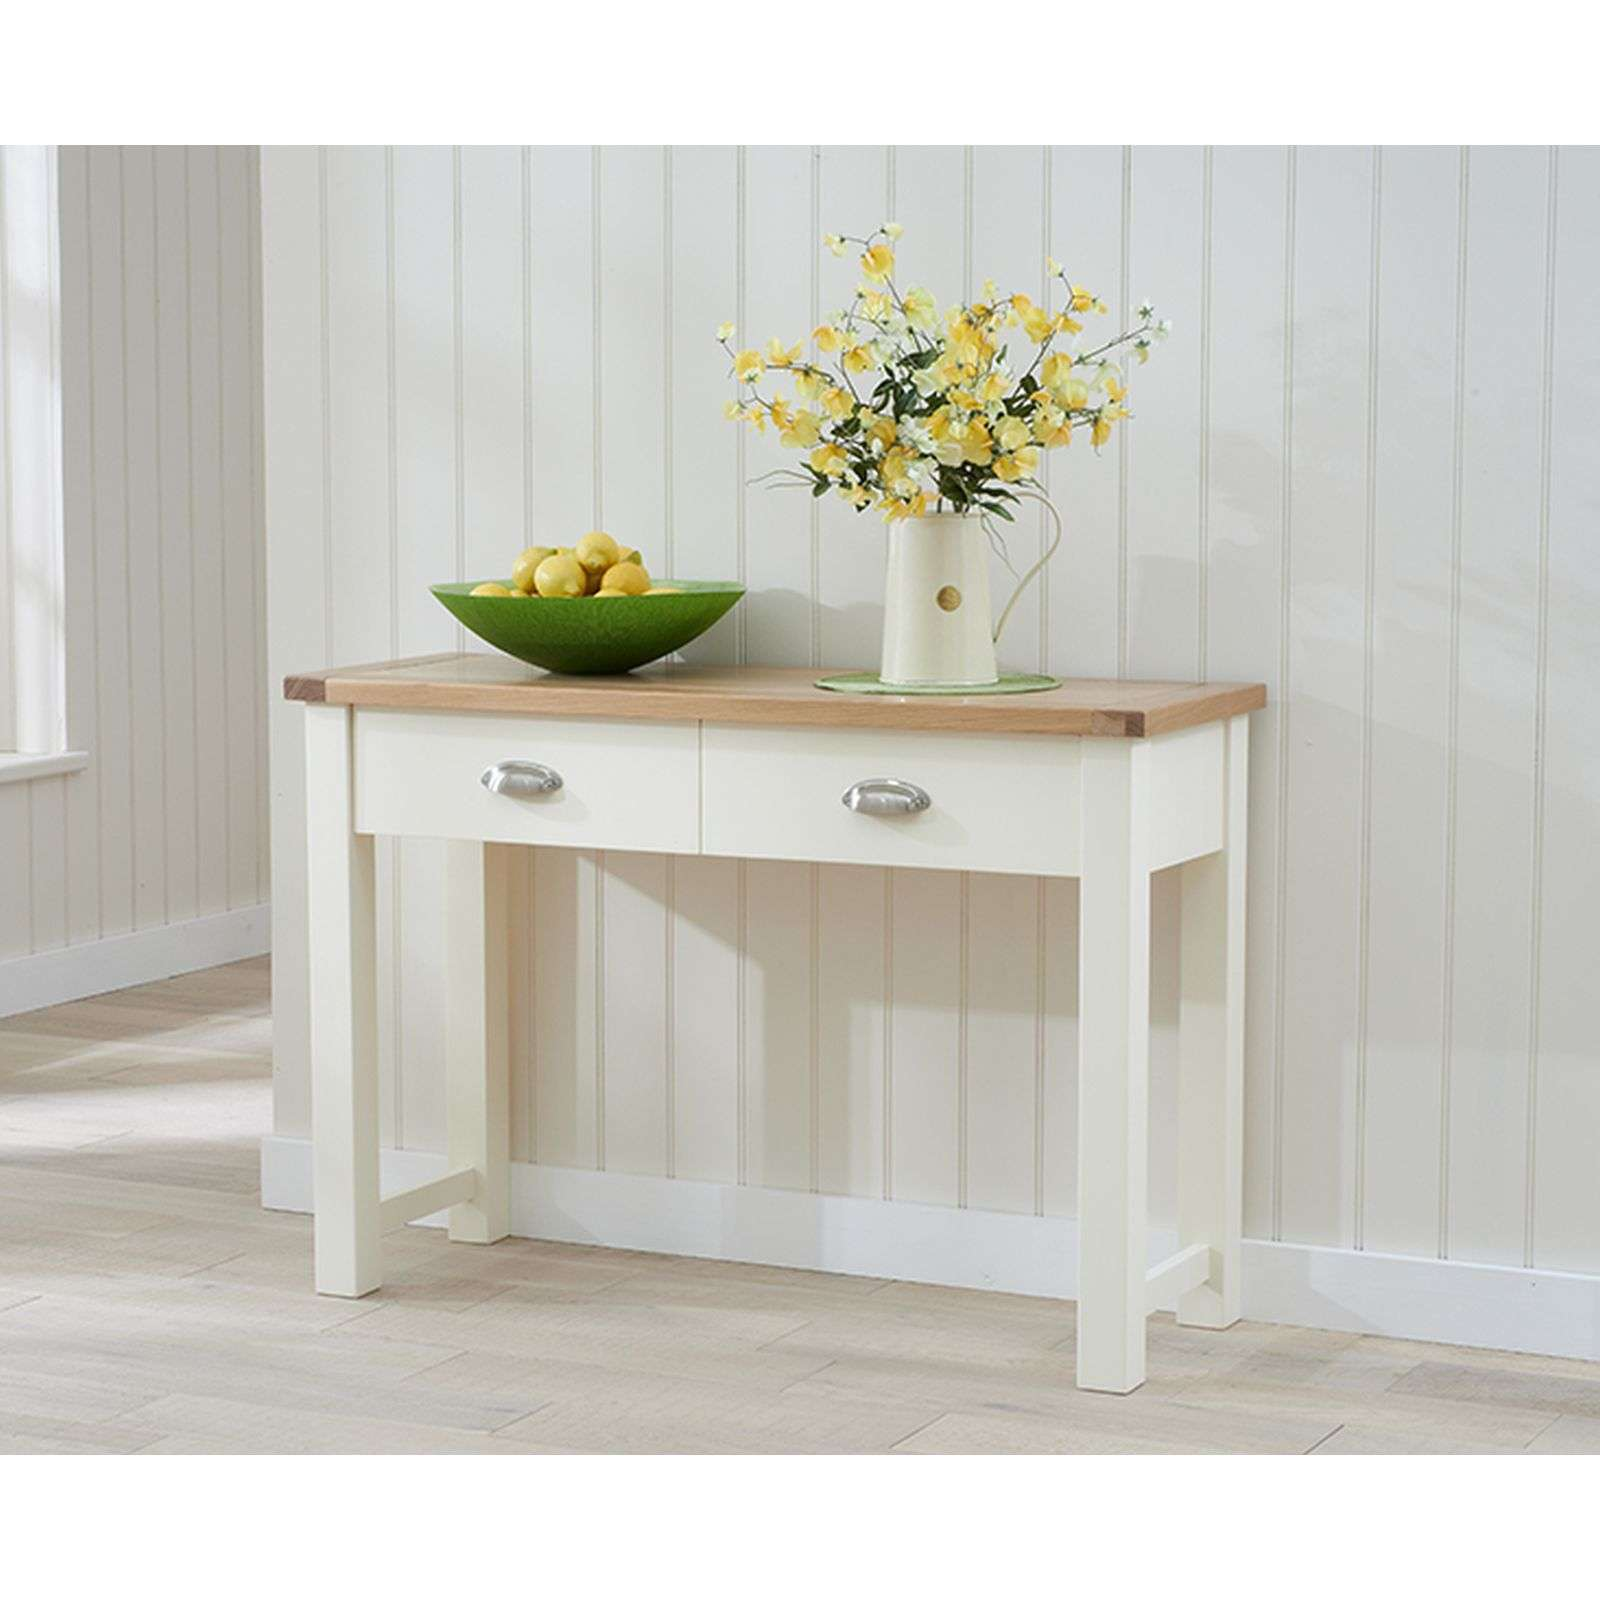 low priced 9f026 e3289 Sandringham Cream Painted Hall Console Table - Buy Now